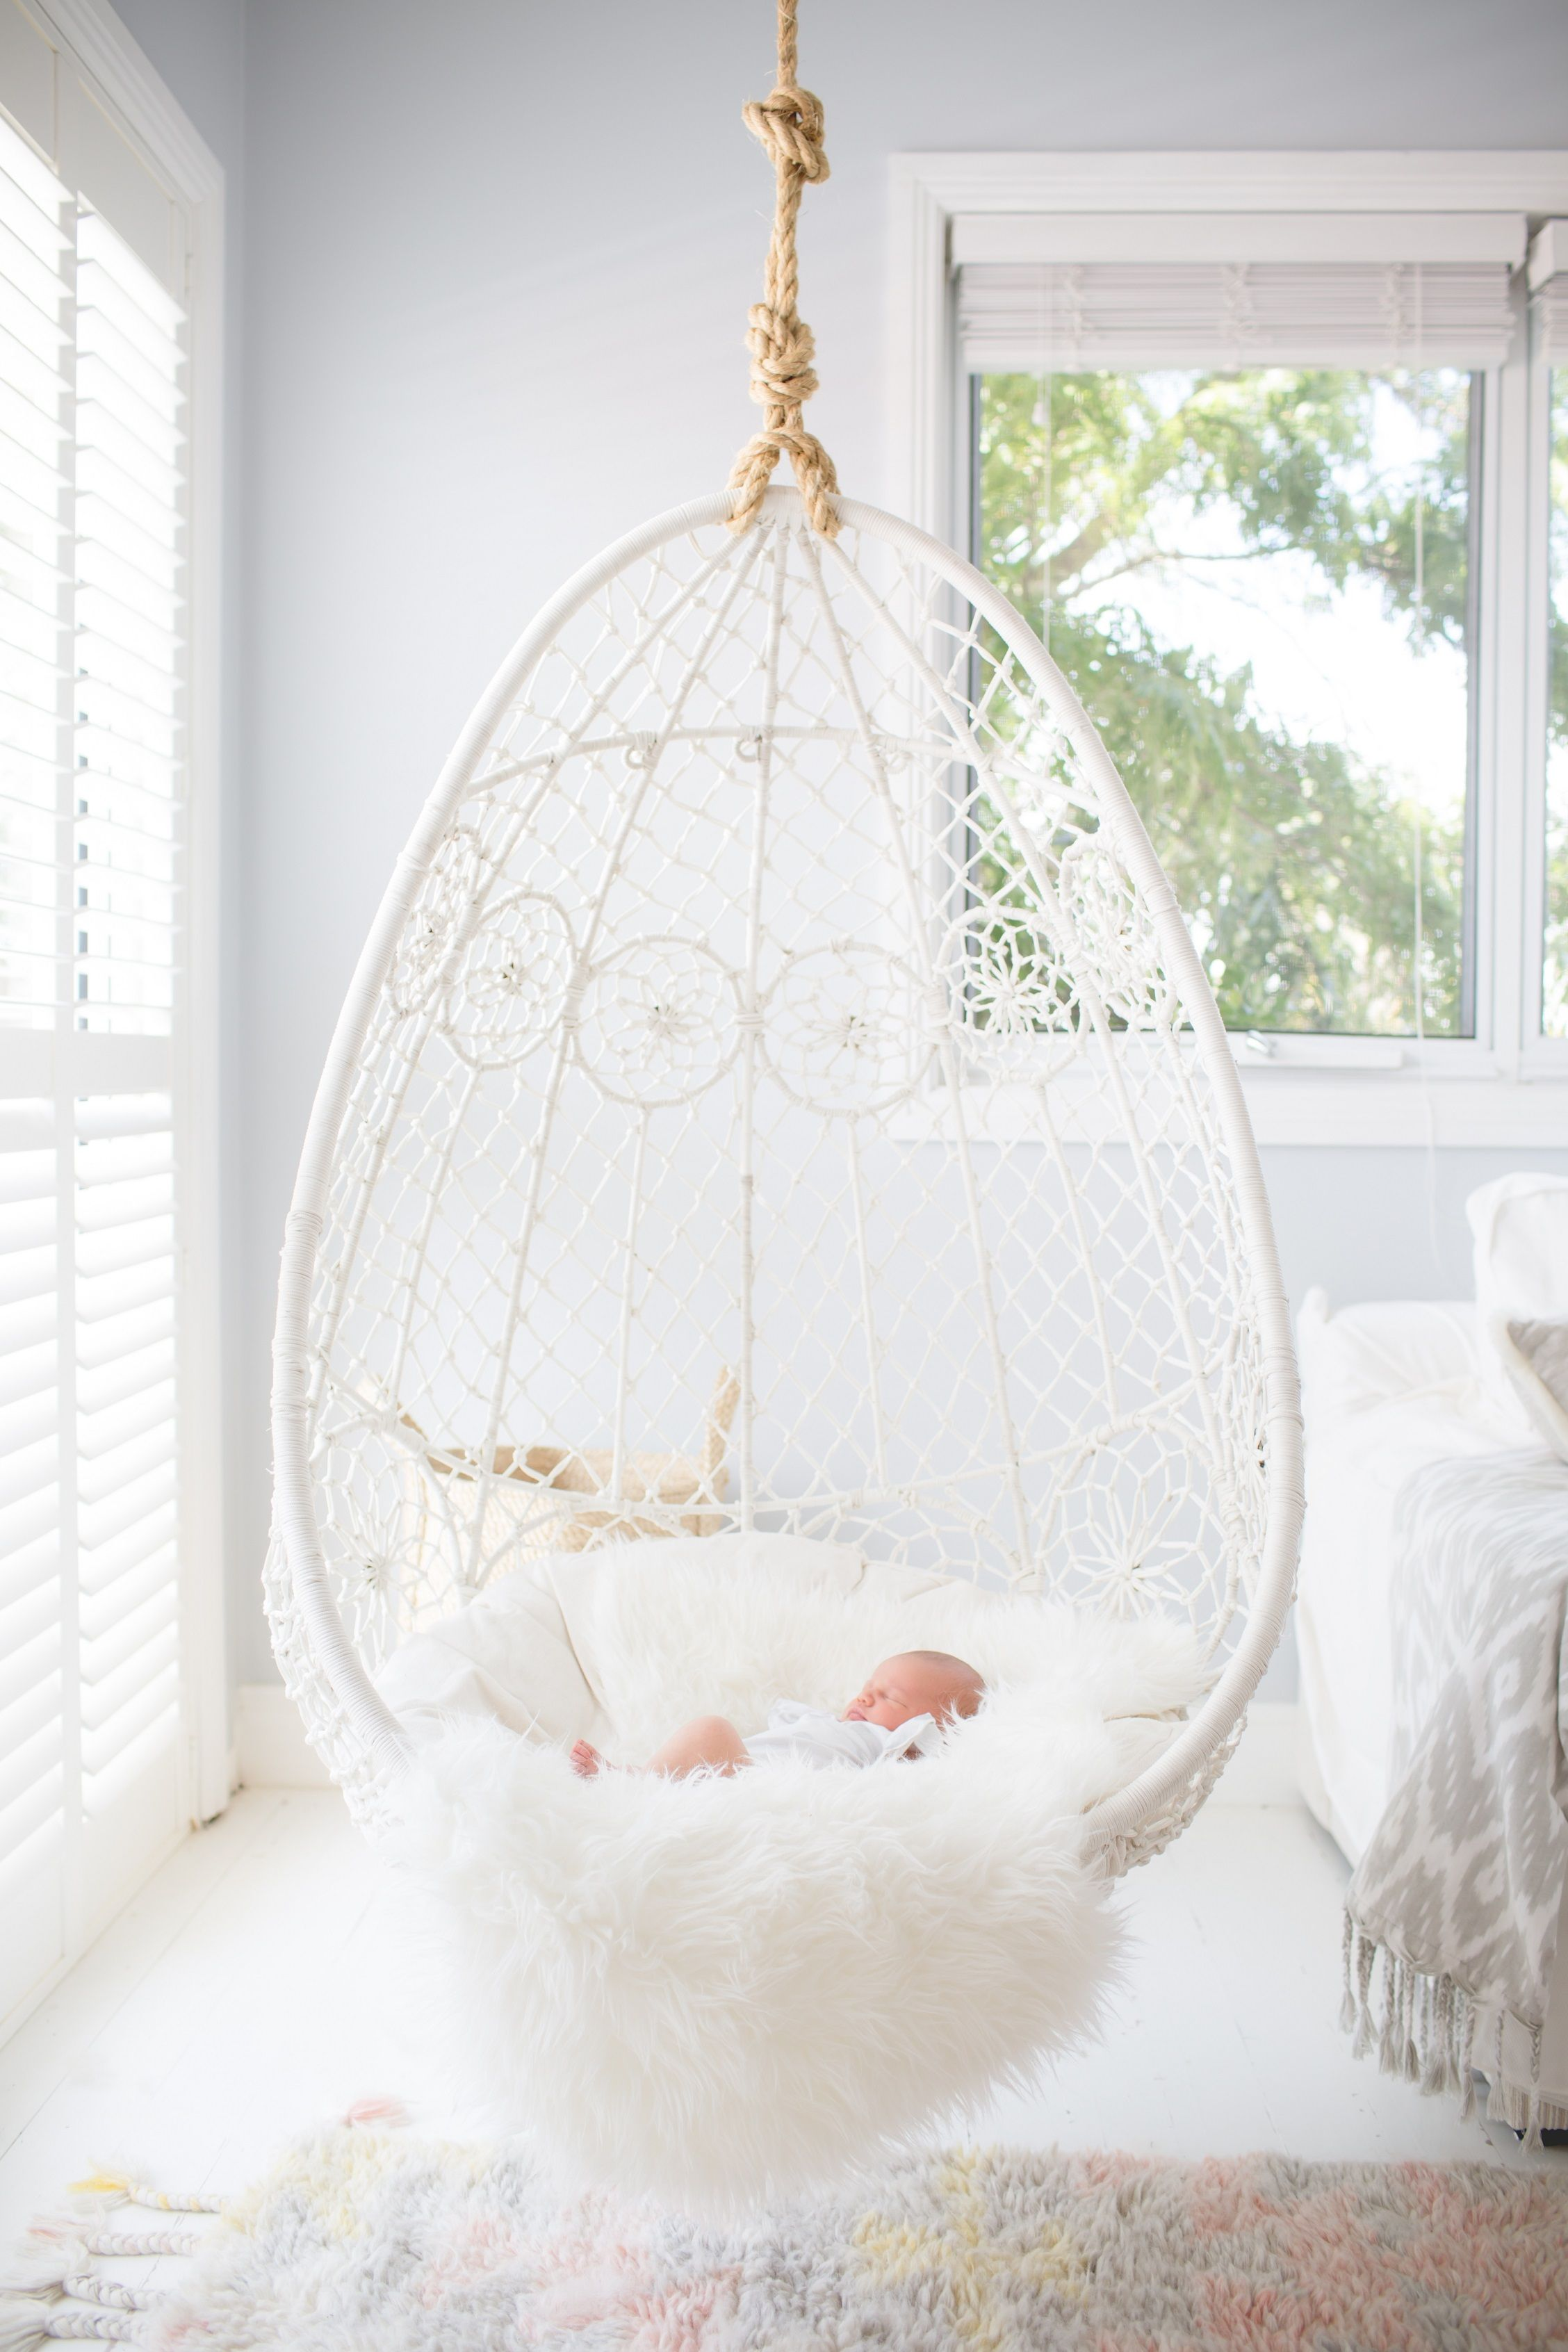 Macrame Swing Chair Best Of Bedroom Cool Hanging Swing